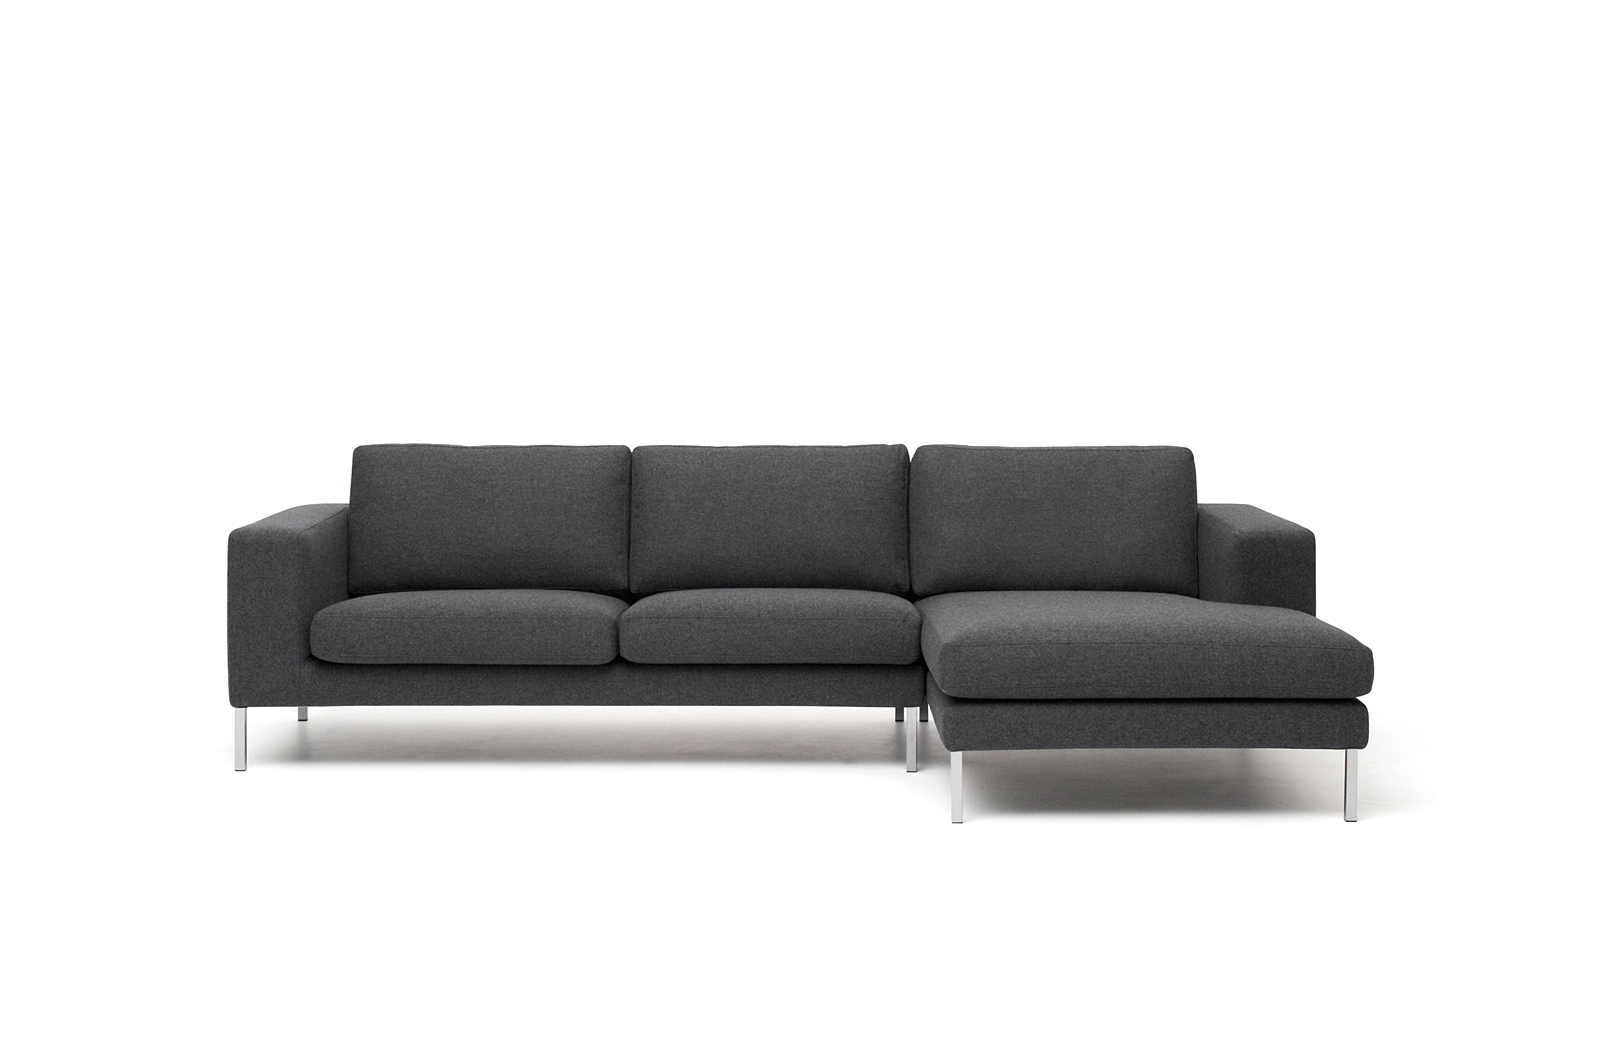 Neo sectional sc 1 st bensen for Applaro chaise lounge